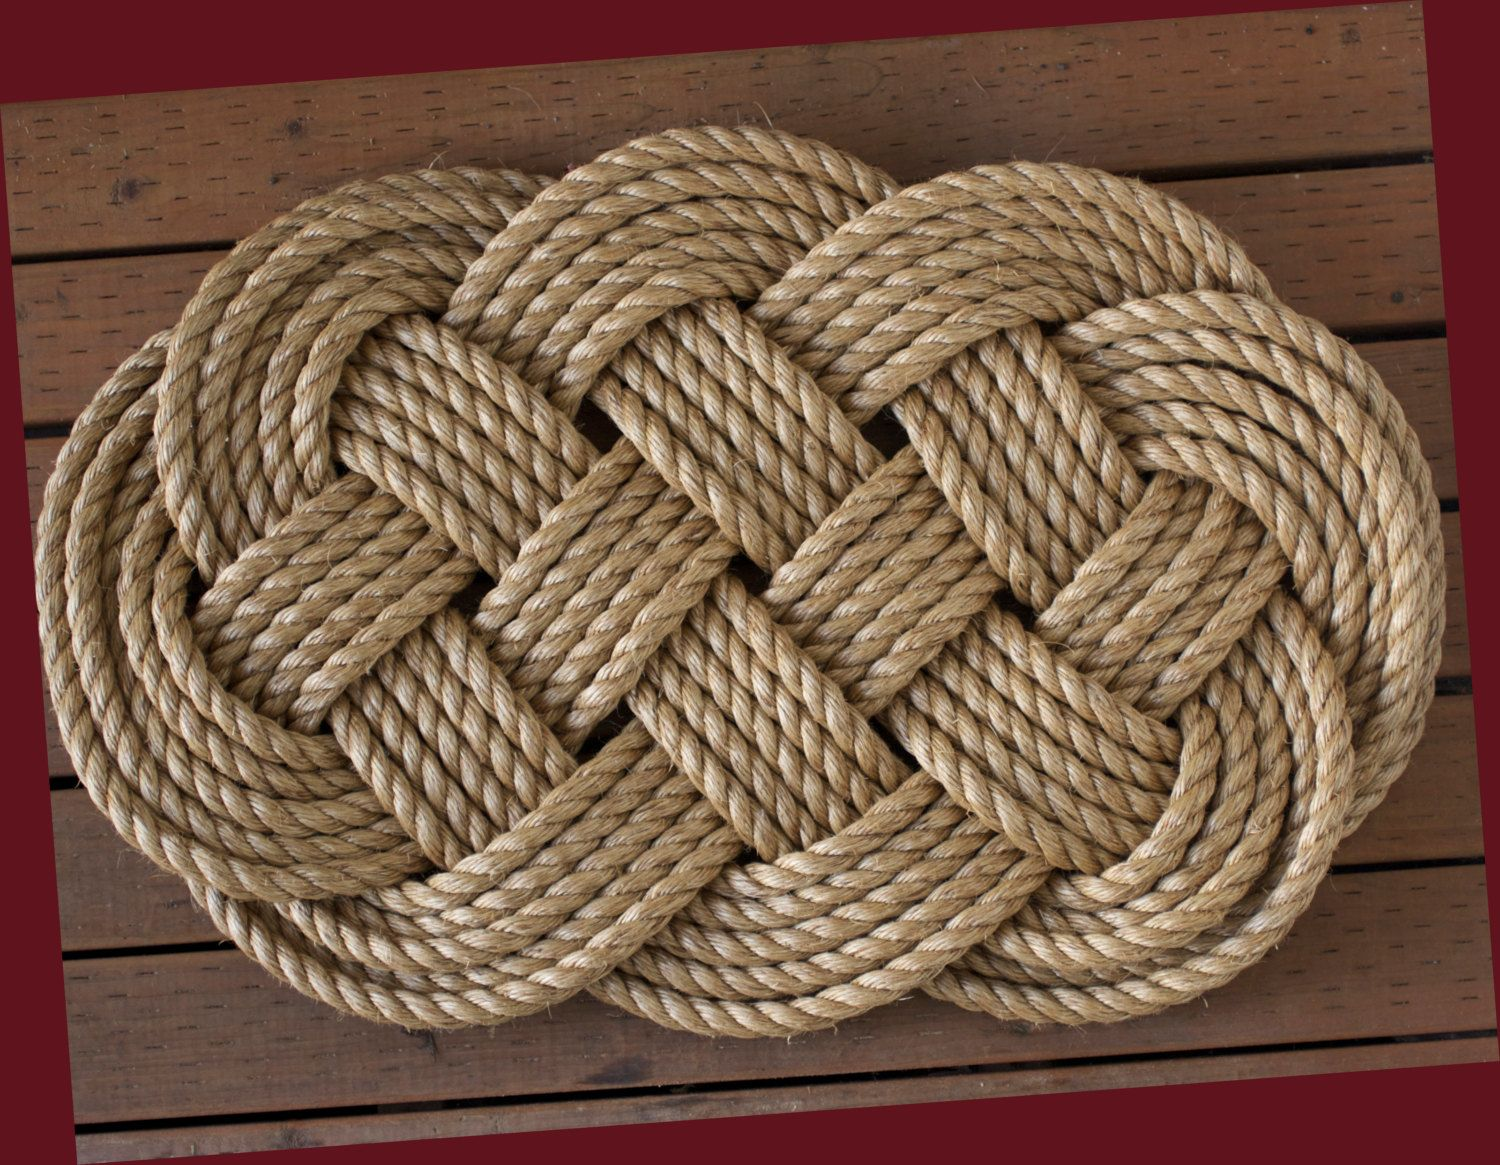 Nautical Welcome Mat Large Braided Rope Door Sailor Ocean Plait Celtic Knot Rug